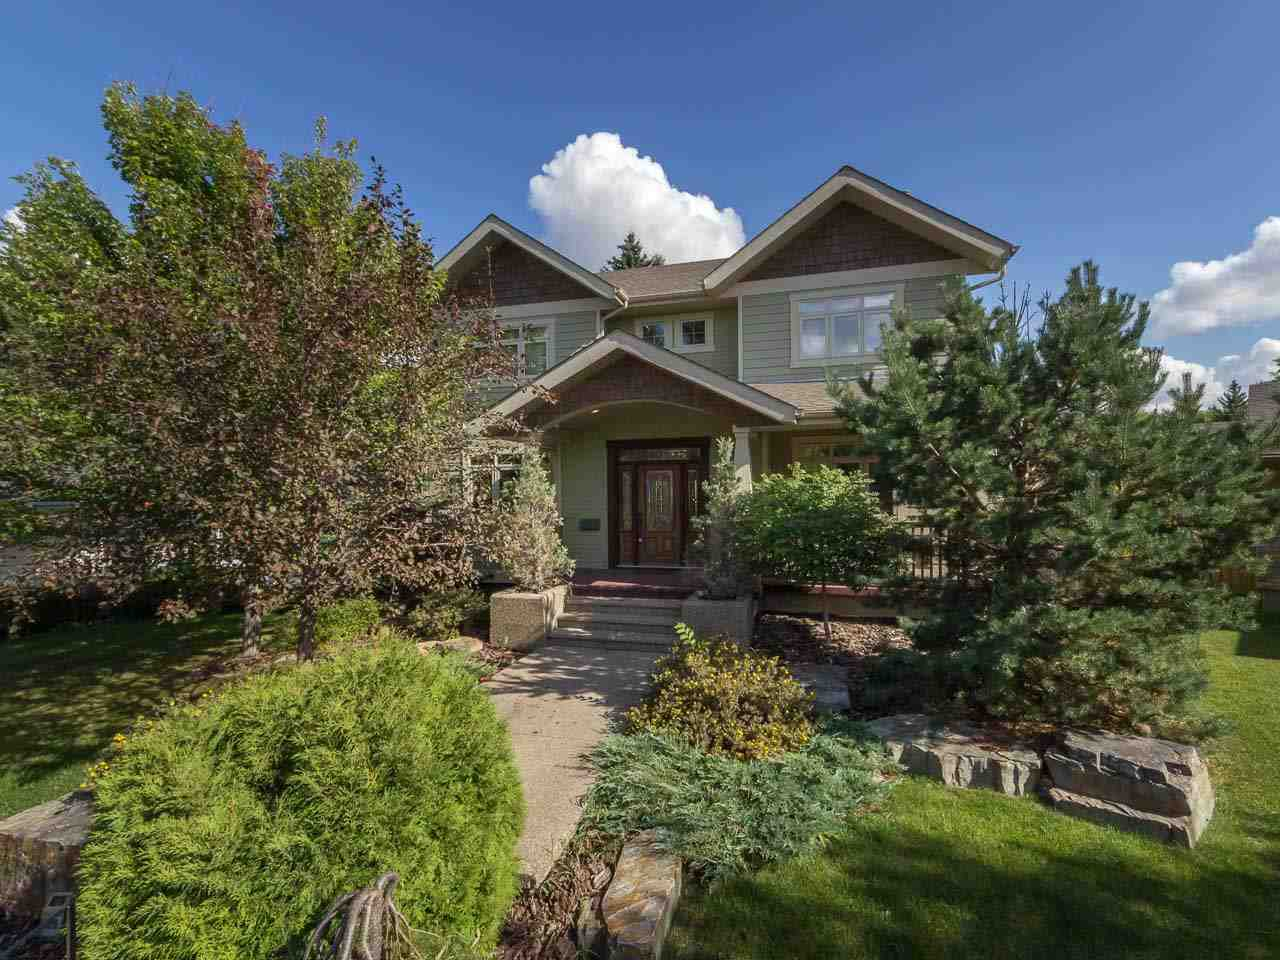 Main Photo: 9315 147 Street in Edmonton: Zone 10 House for sale : MLS® # E4082322